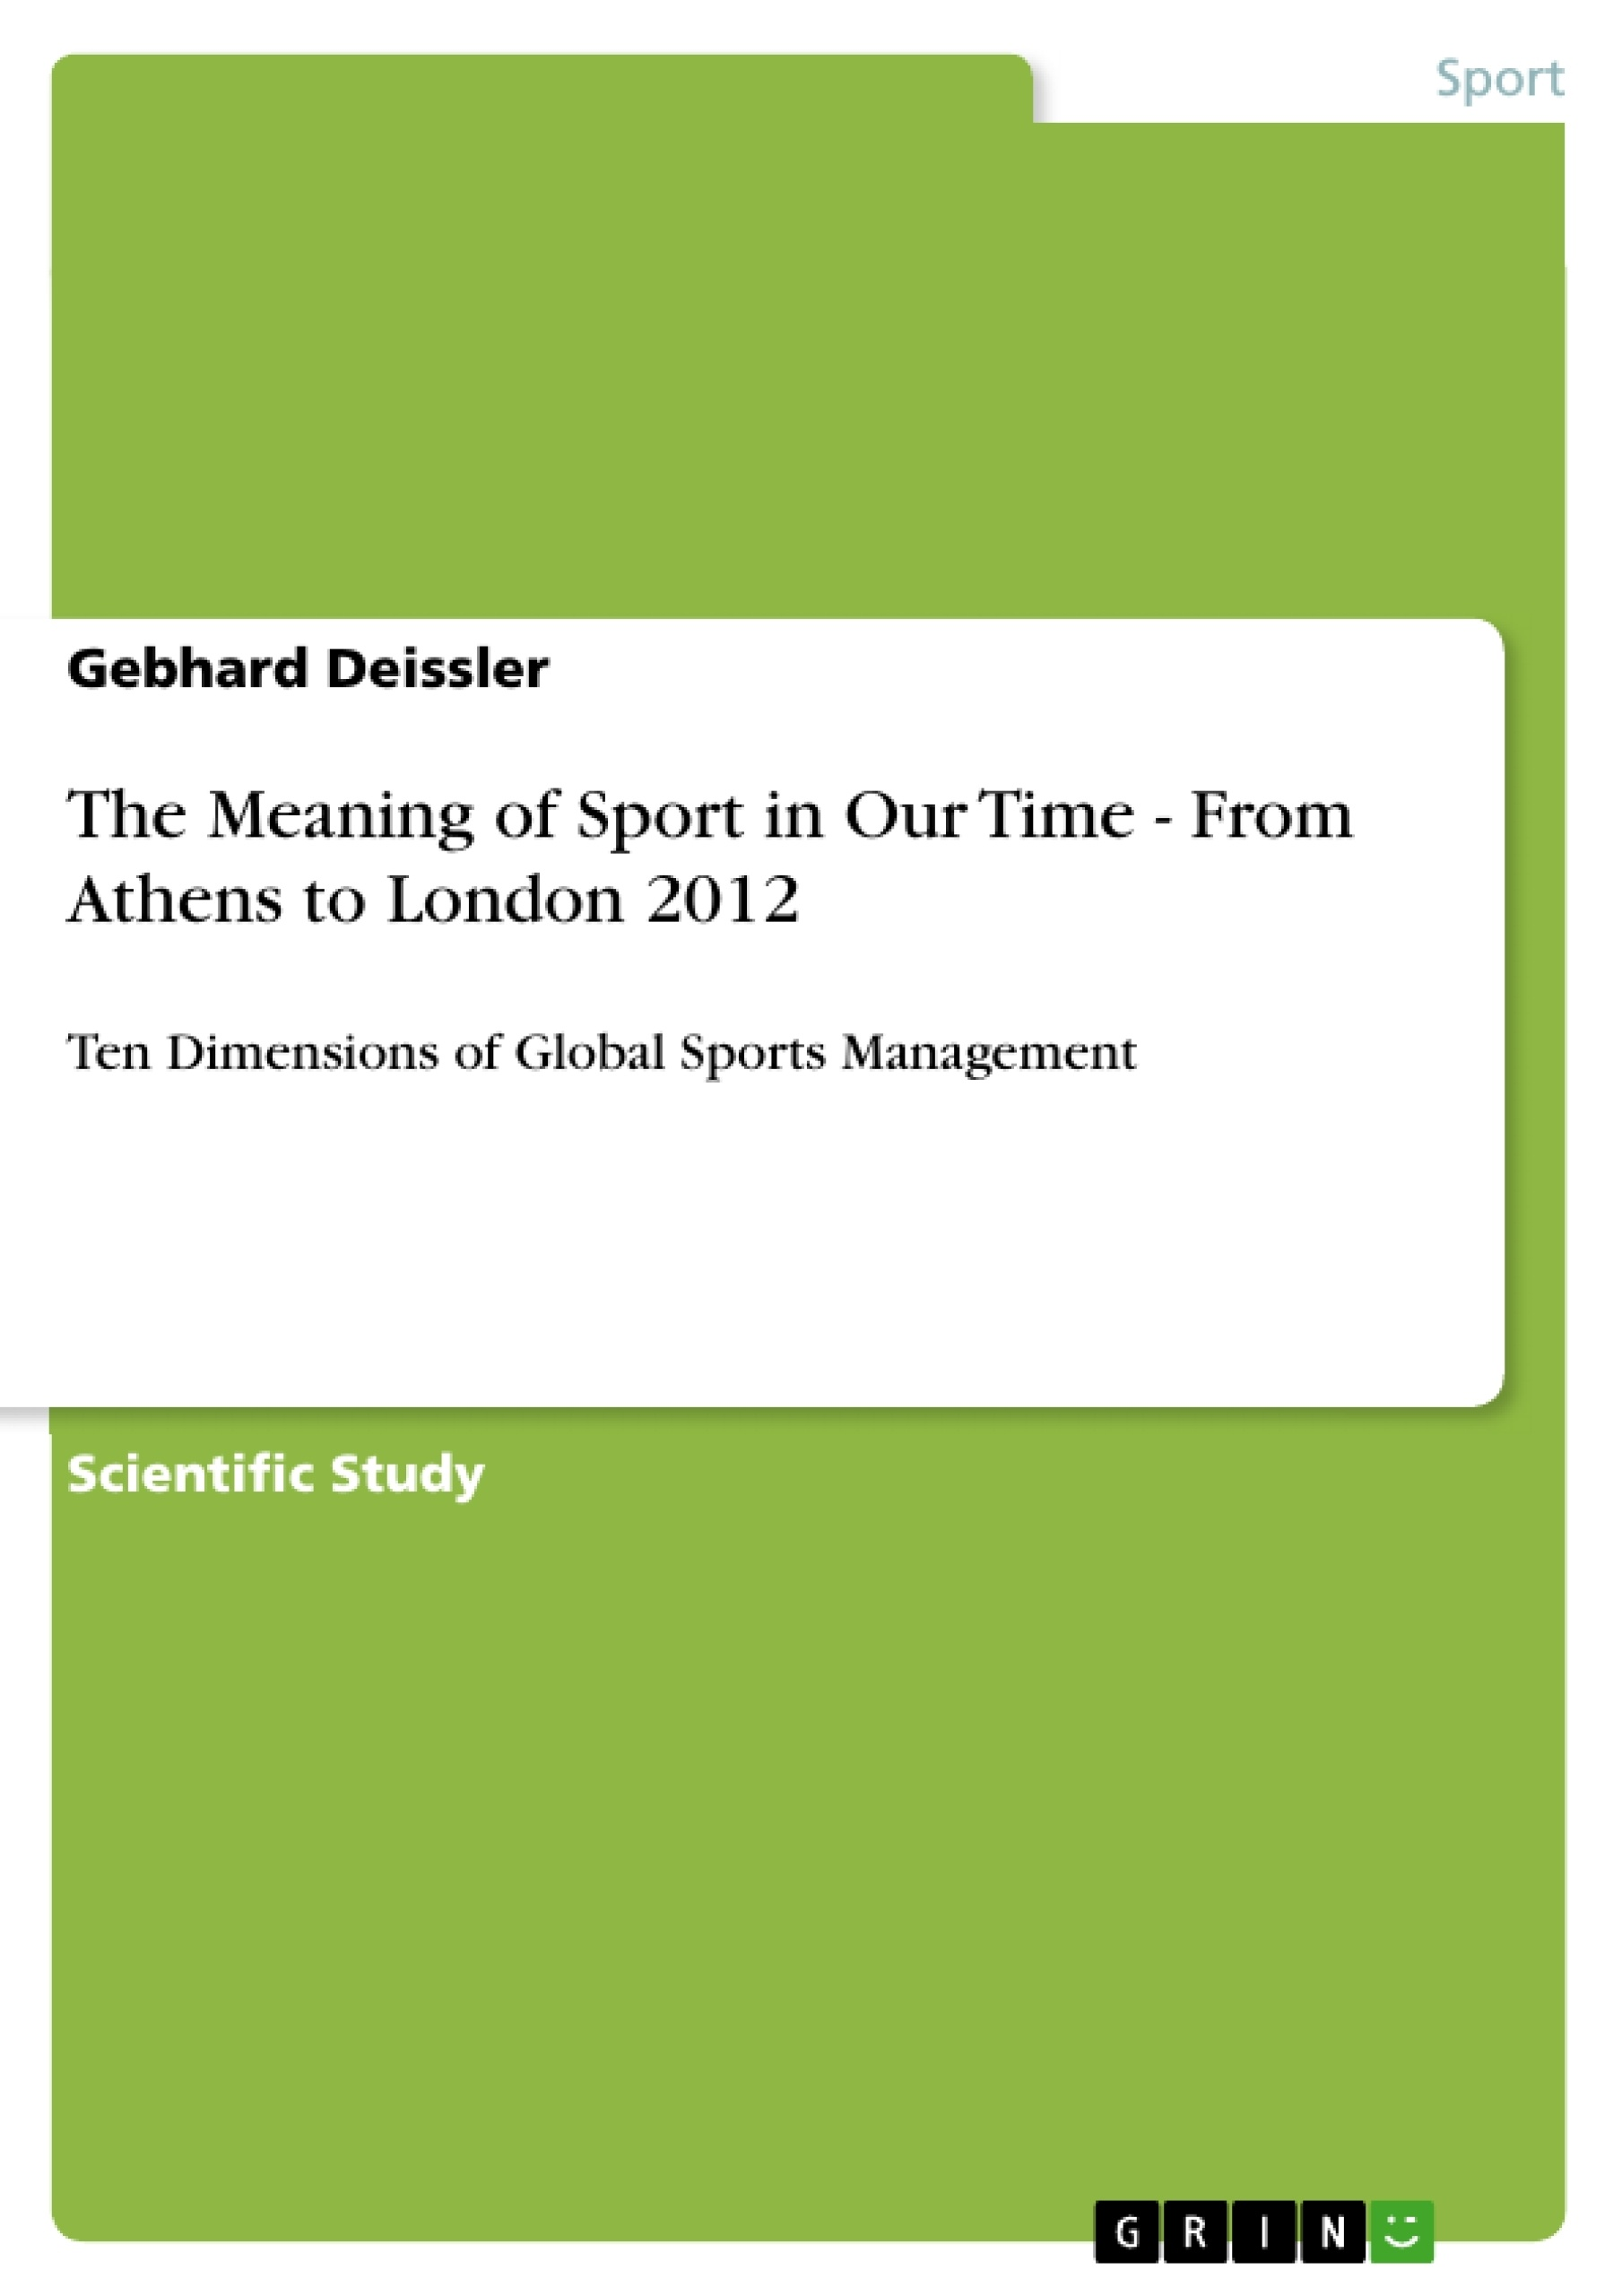 Title: The Meaning of Sport in Our Time -  From Athens to London 2012